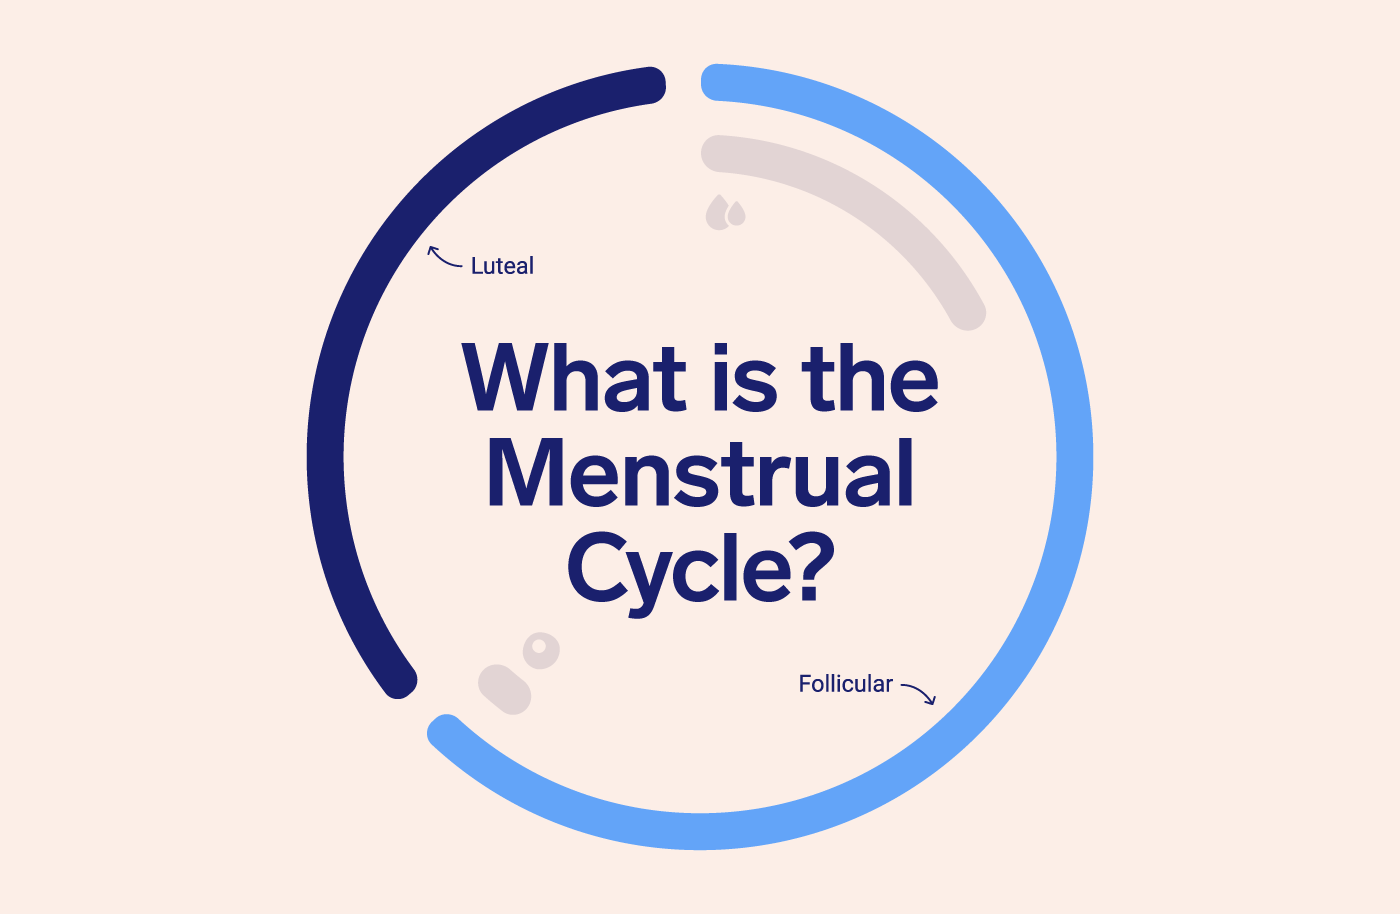 image of a circle showing length of follicular and luteal phase with the test 'what is the menstrual cycle?'